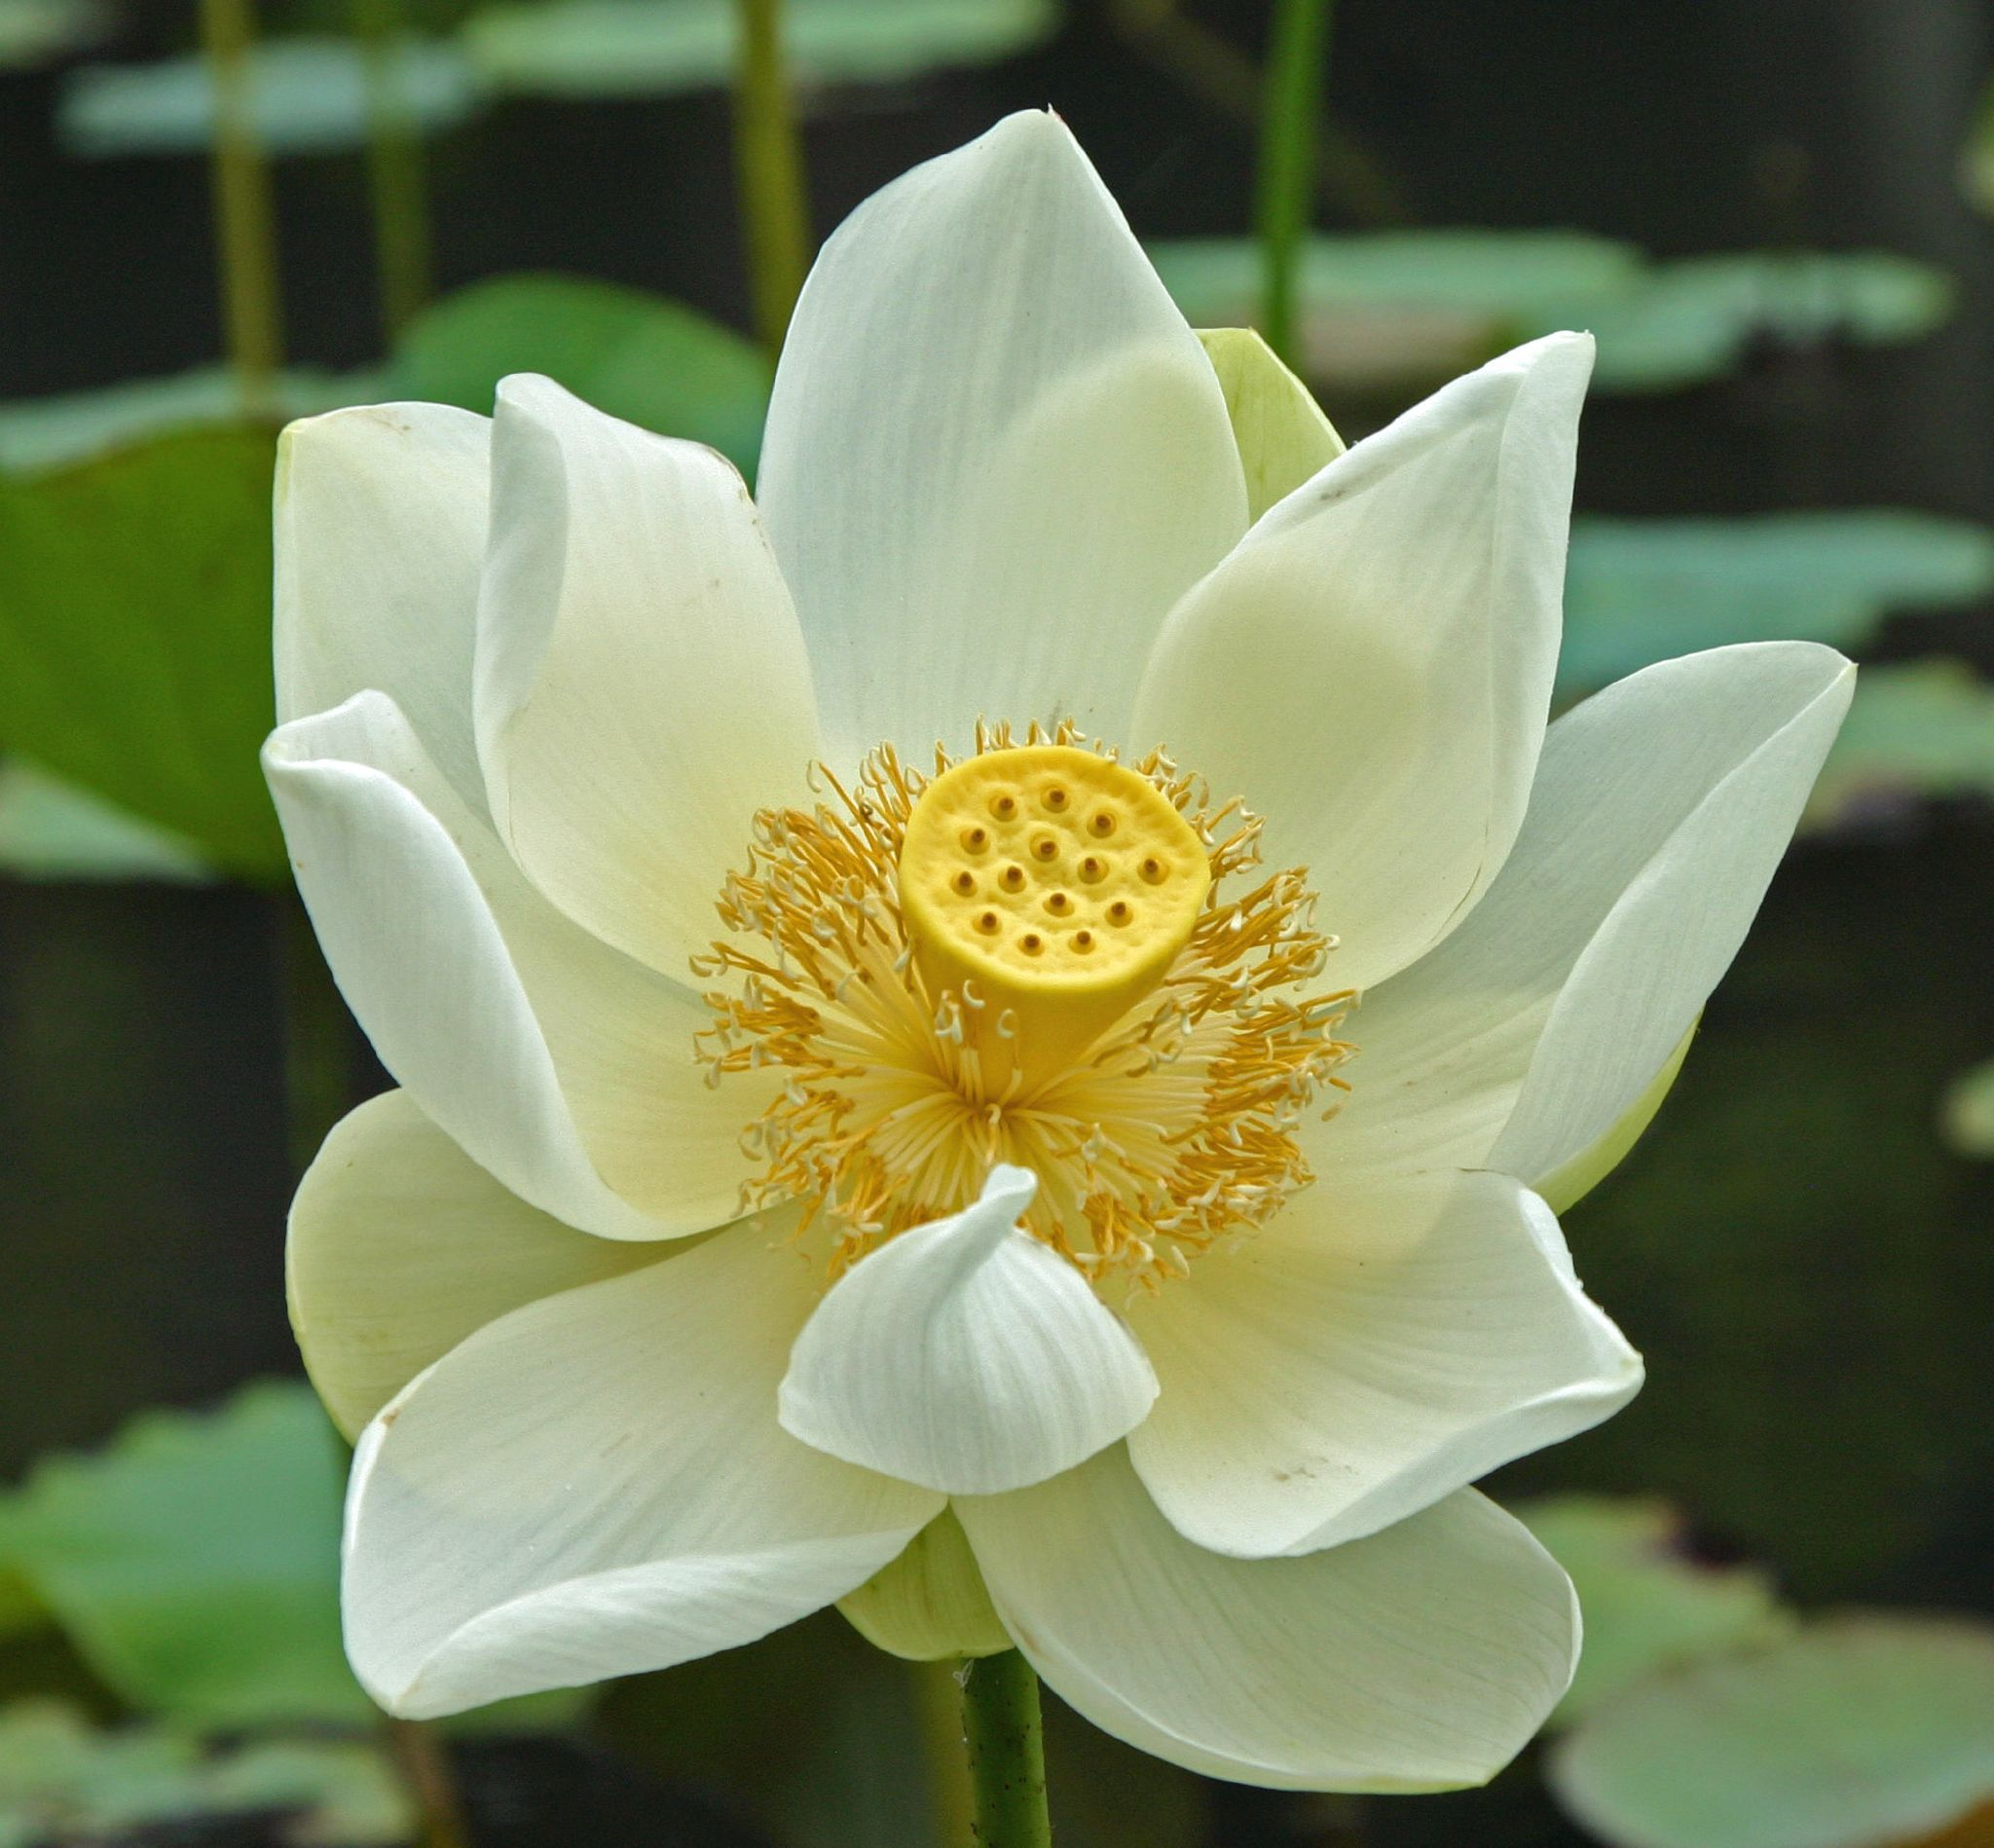 The beautiful white lotus flower has special significance in the beautiful white lotus flower has special significance in hinduism where its meaning is strongly associated with laxmi and brahma izmirmasajfo